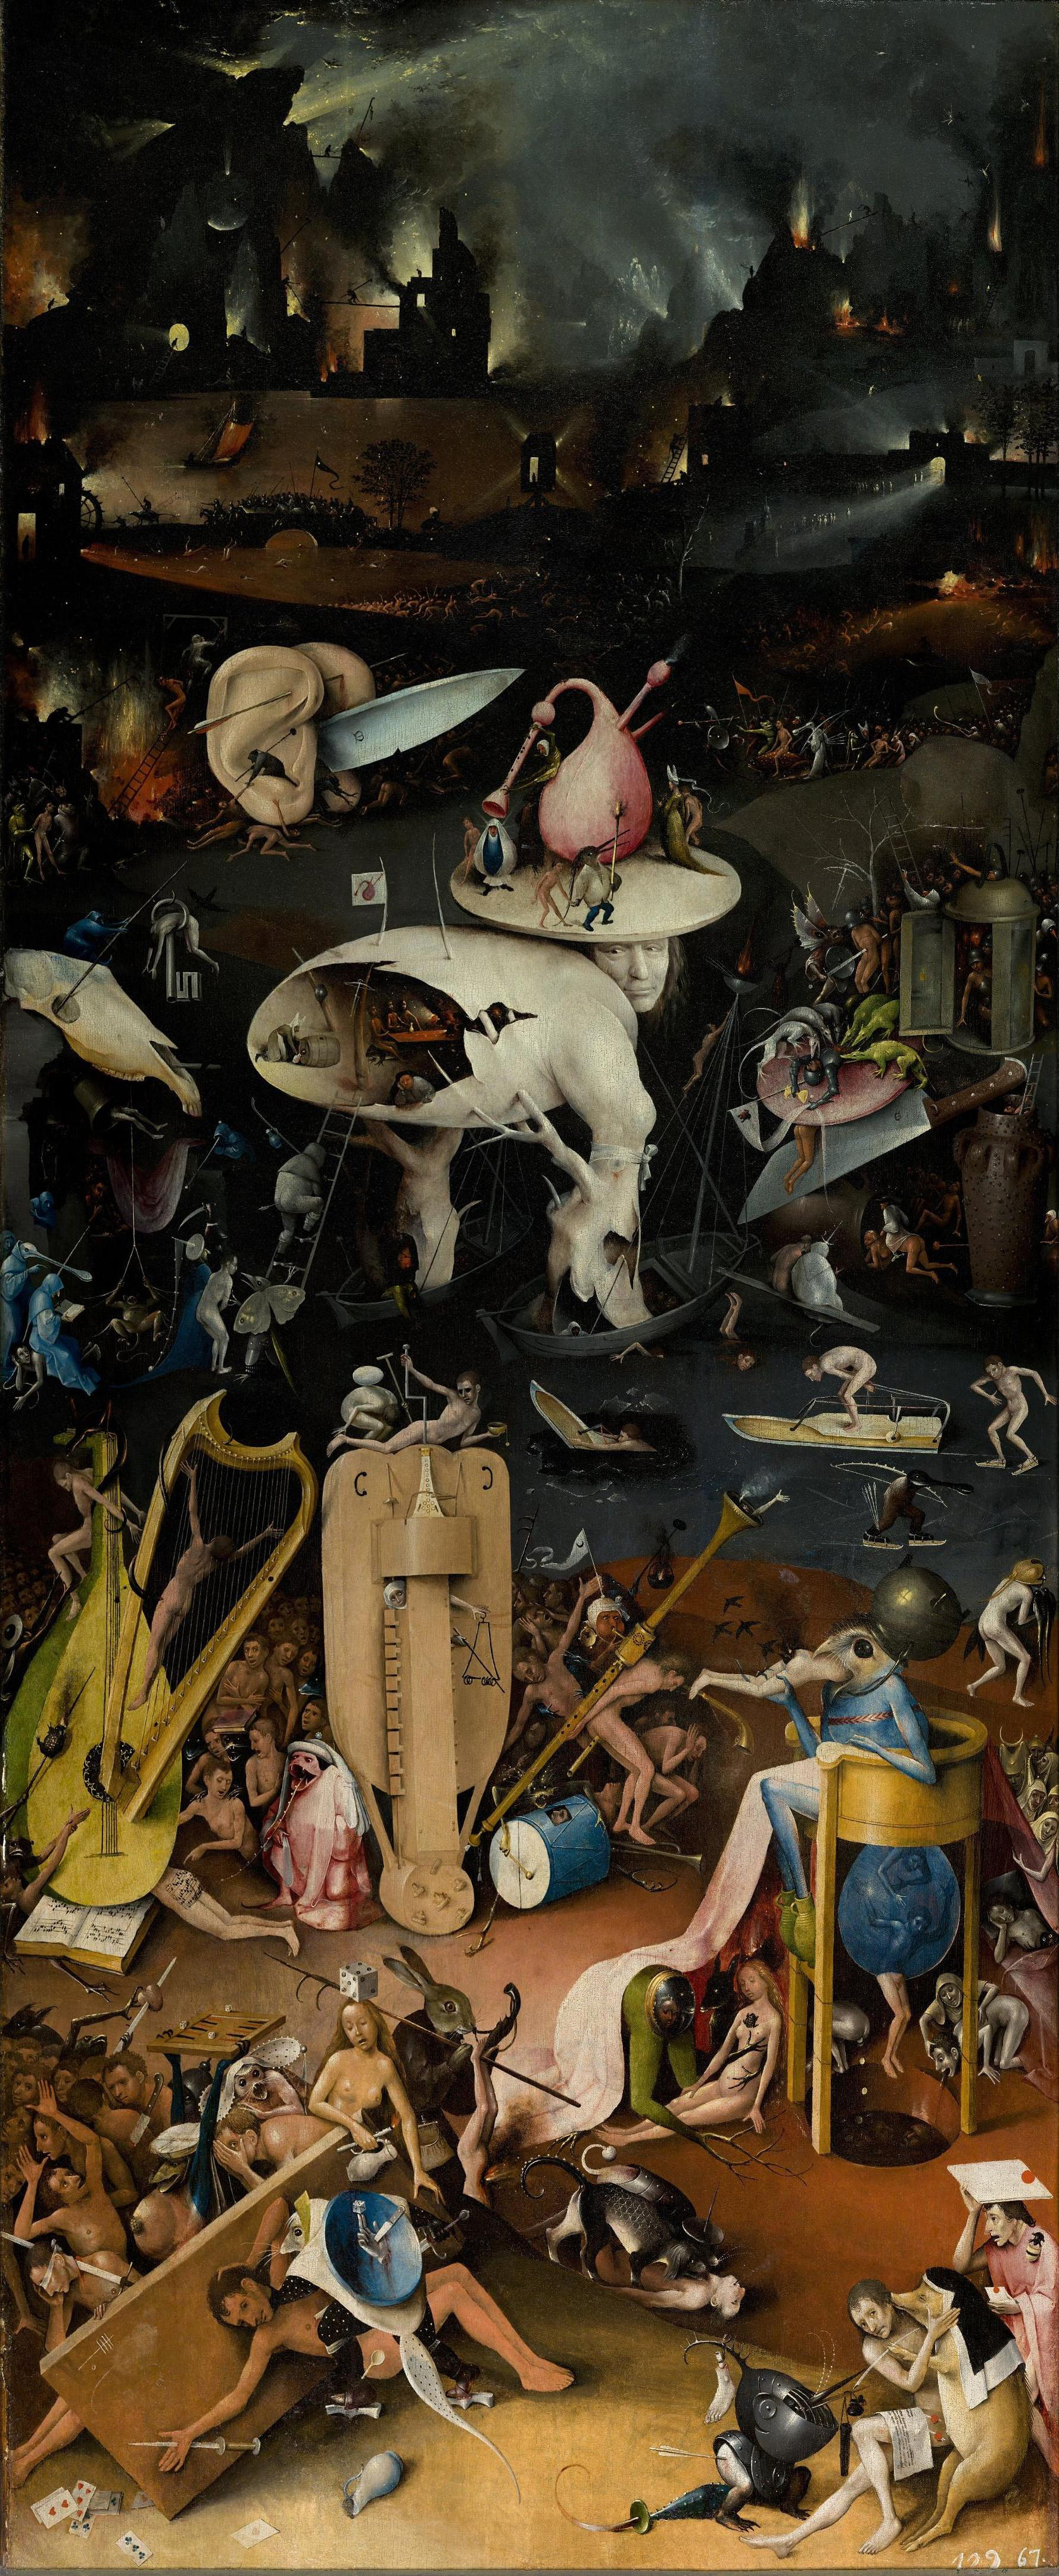 FileHieronymus Bosch The Garden of Earthly Delights Helljpg